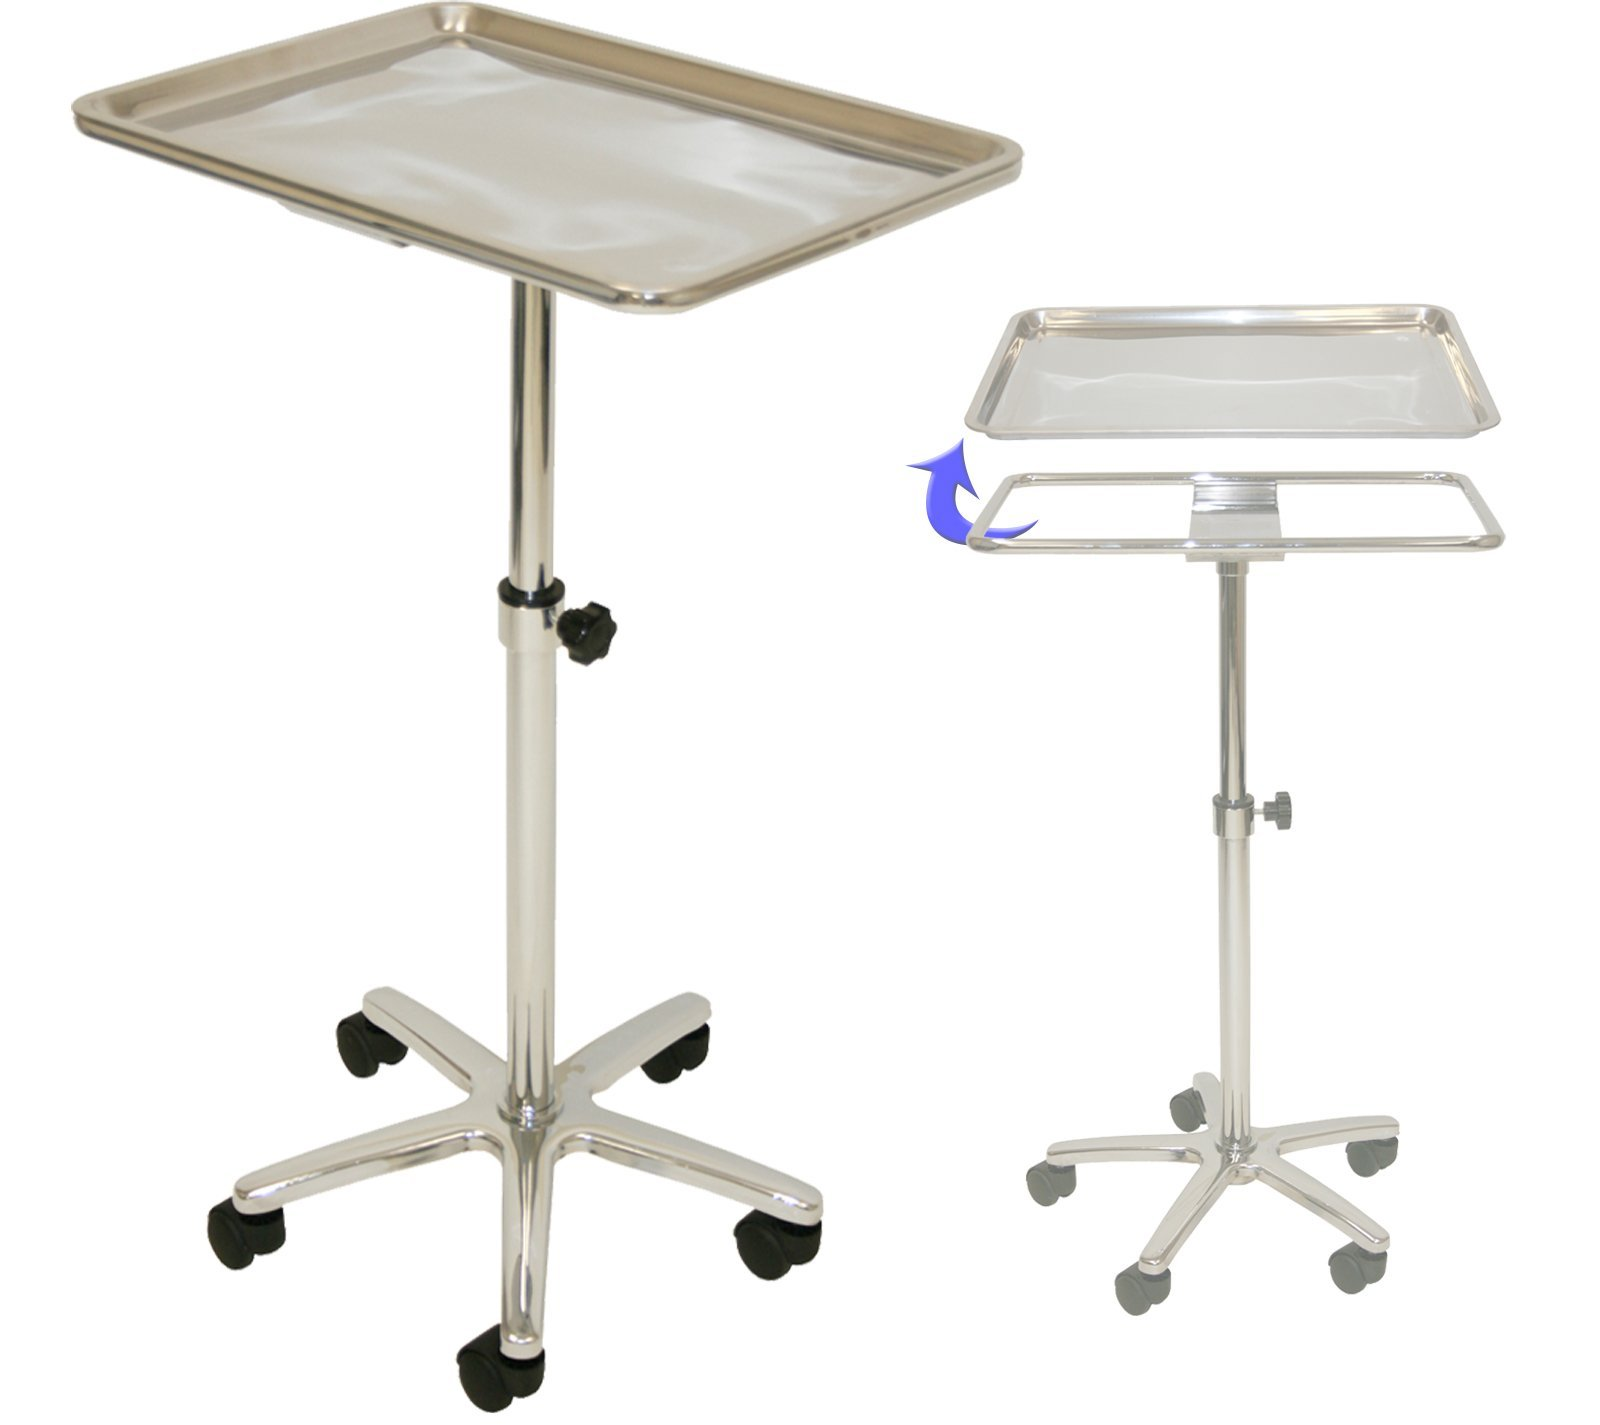 InkBed Extra Large Chrome Steel Single-Post Mayo Instrument Stand with Lift Out Work Tray by InkBed